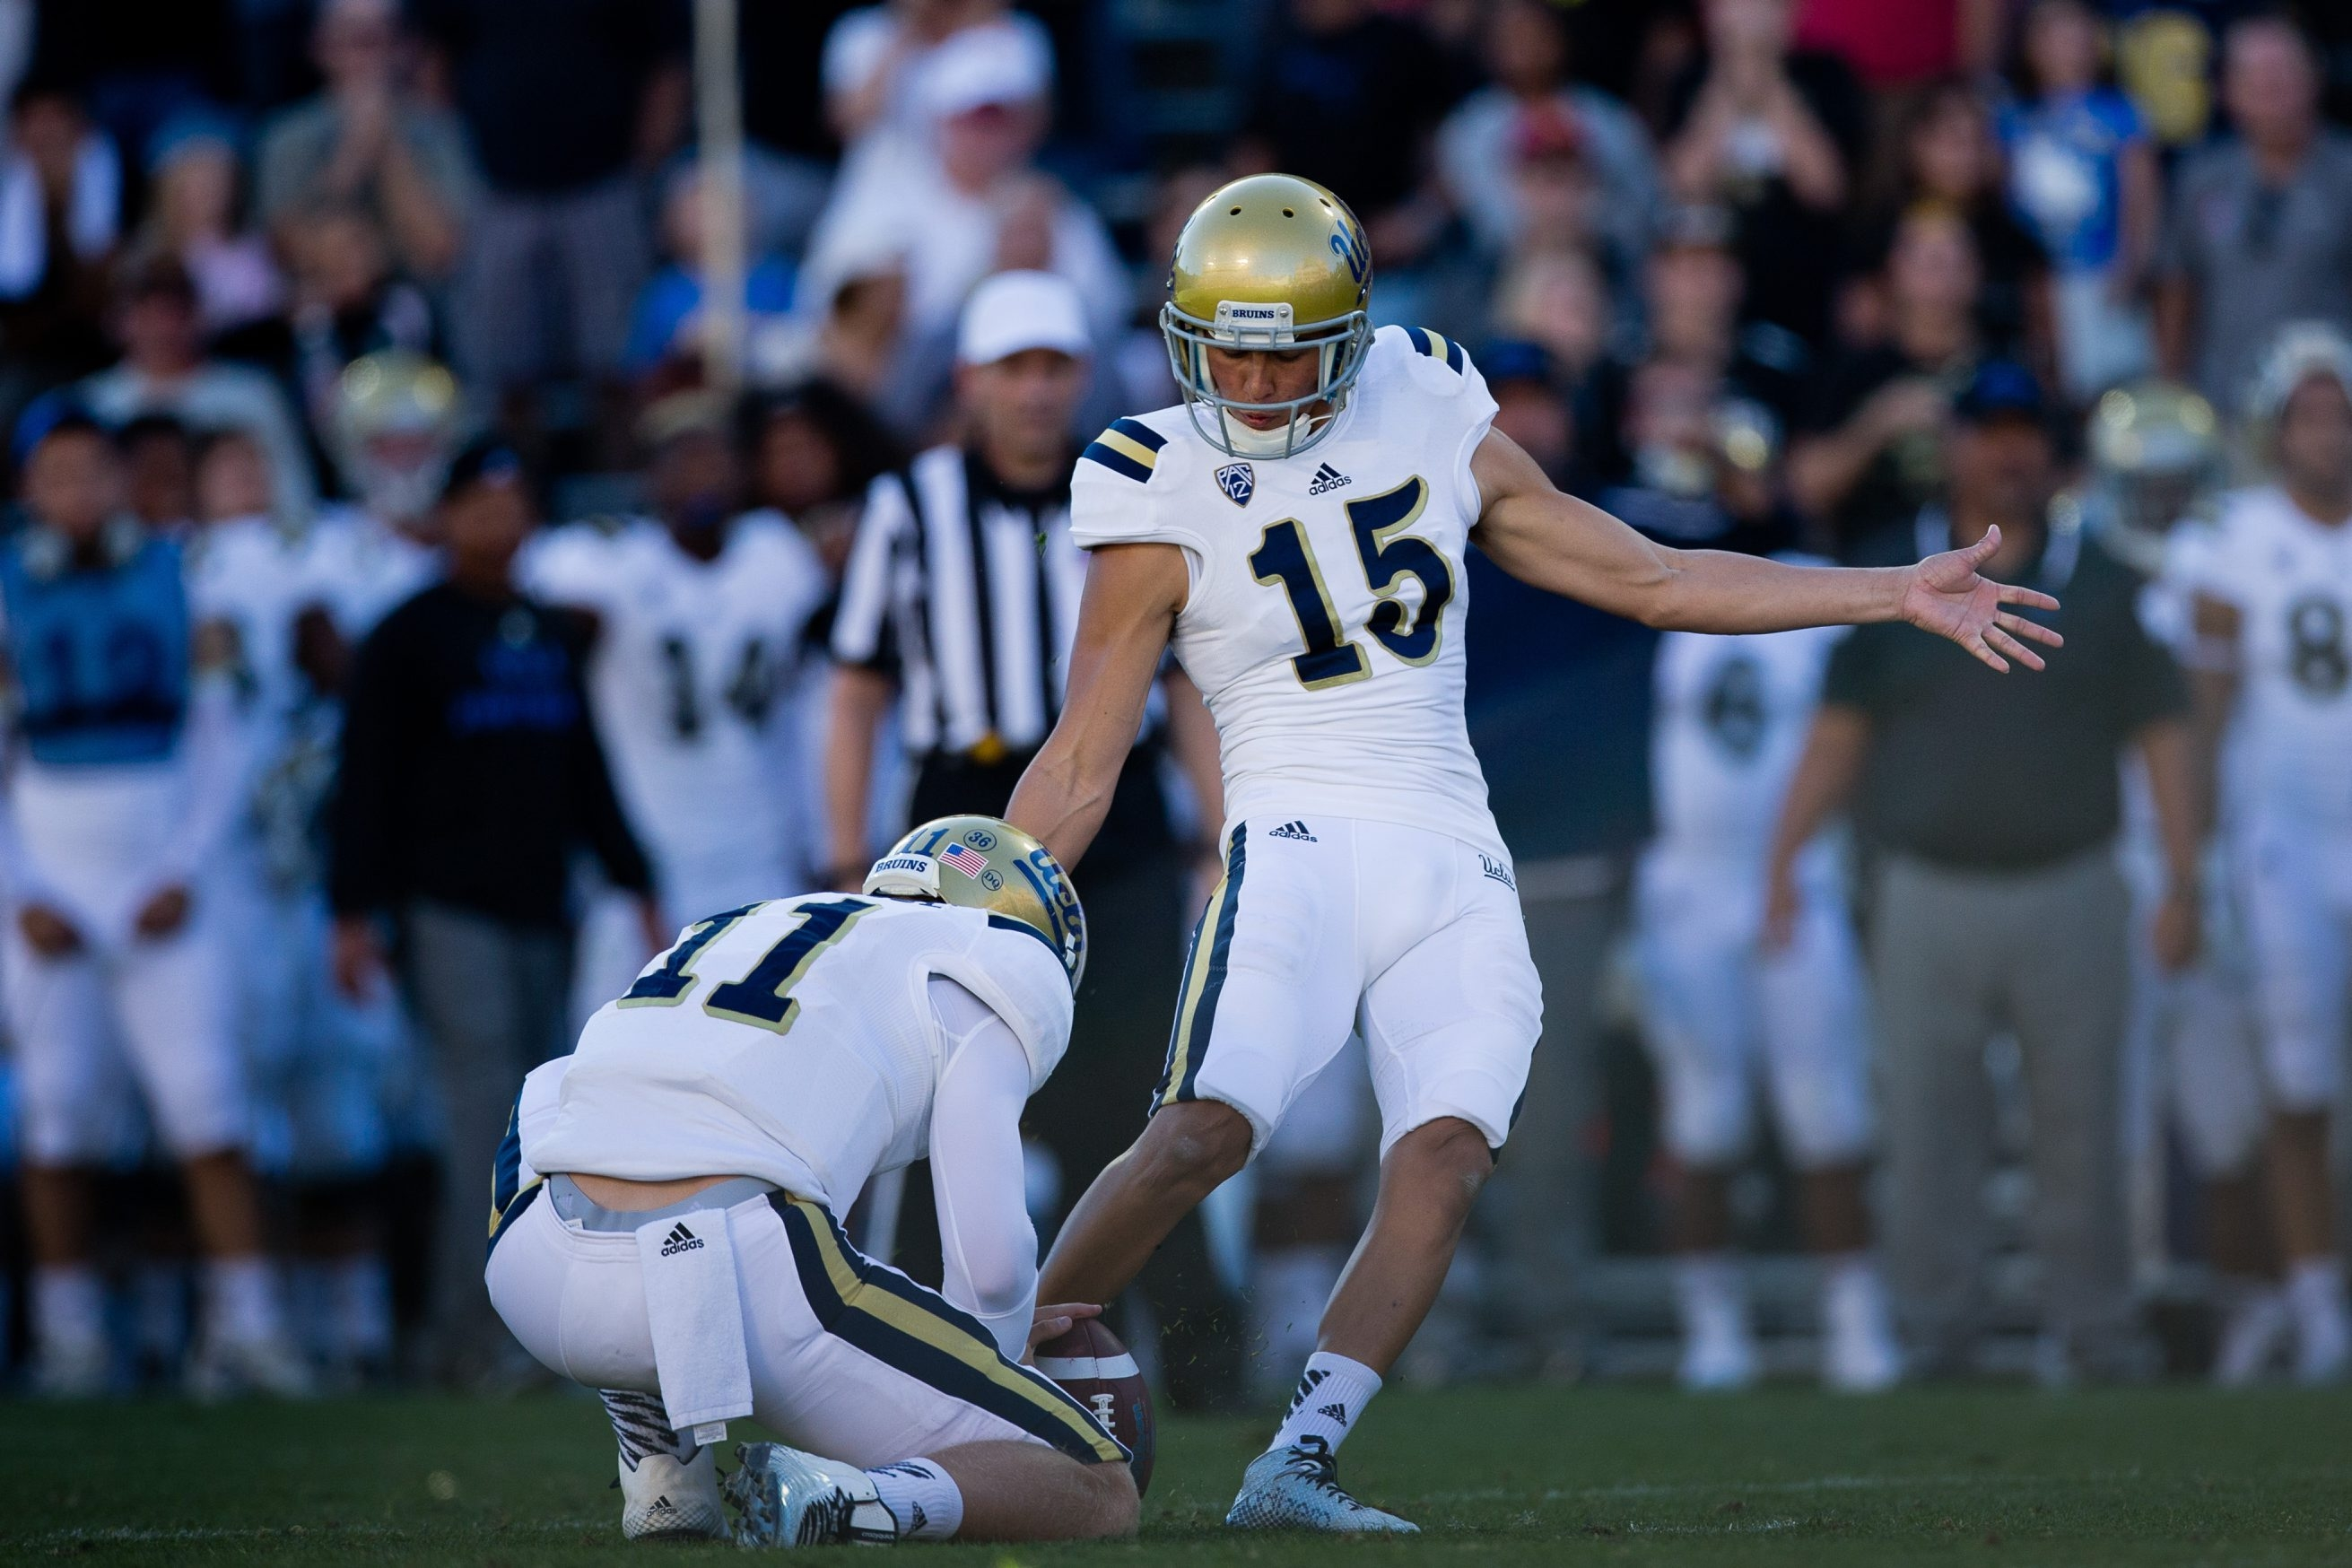 Ka'imi Fairbairn made 41 straight field goals from 35 yards or closer to end his career at UCLA.